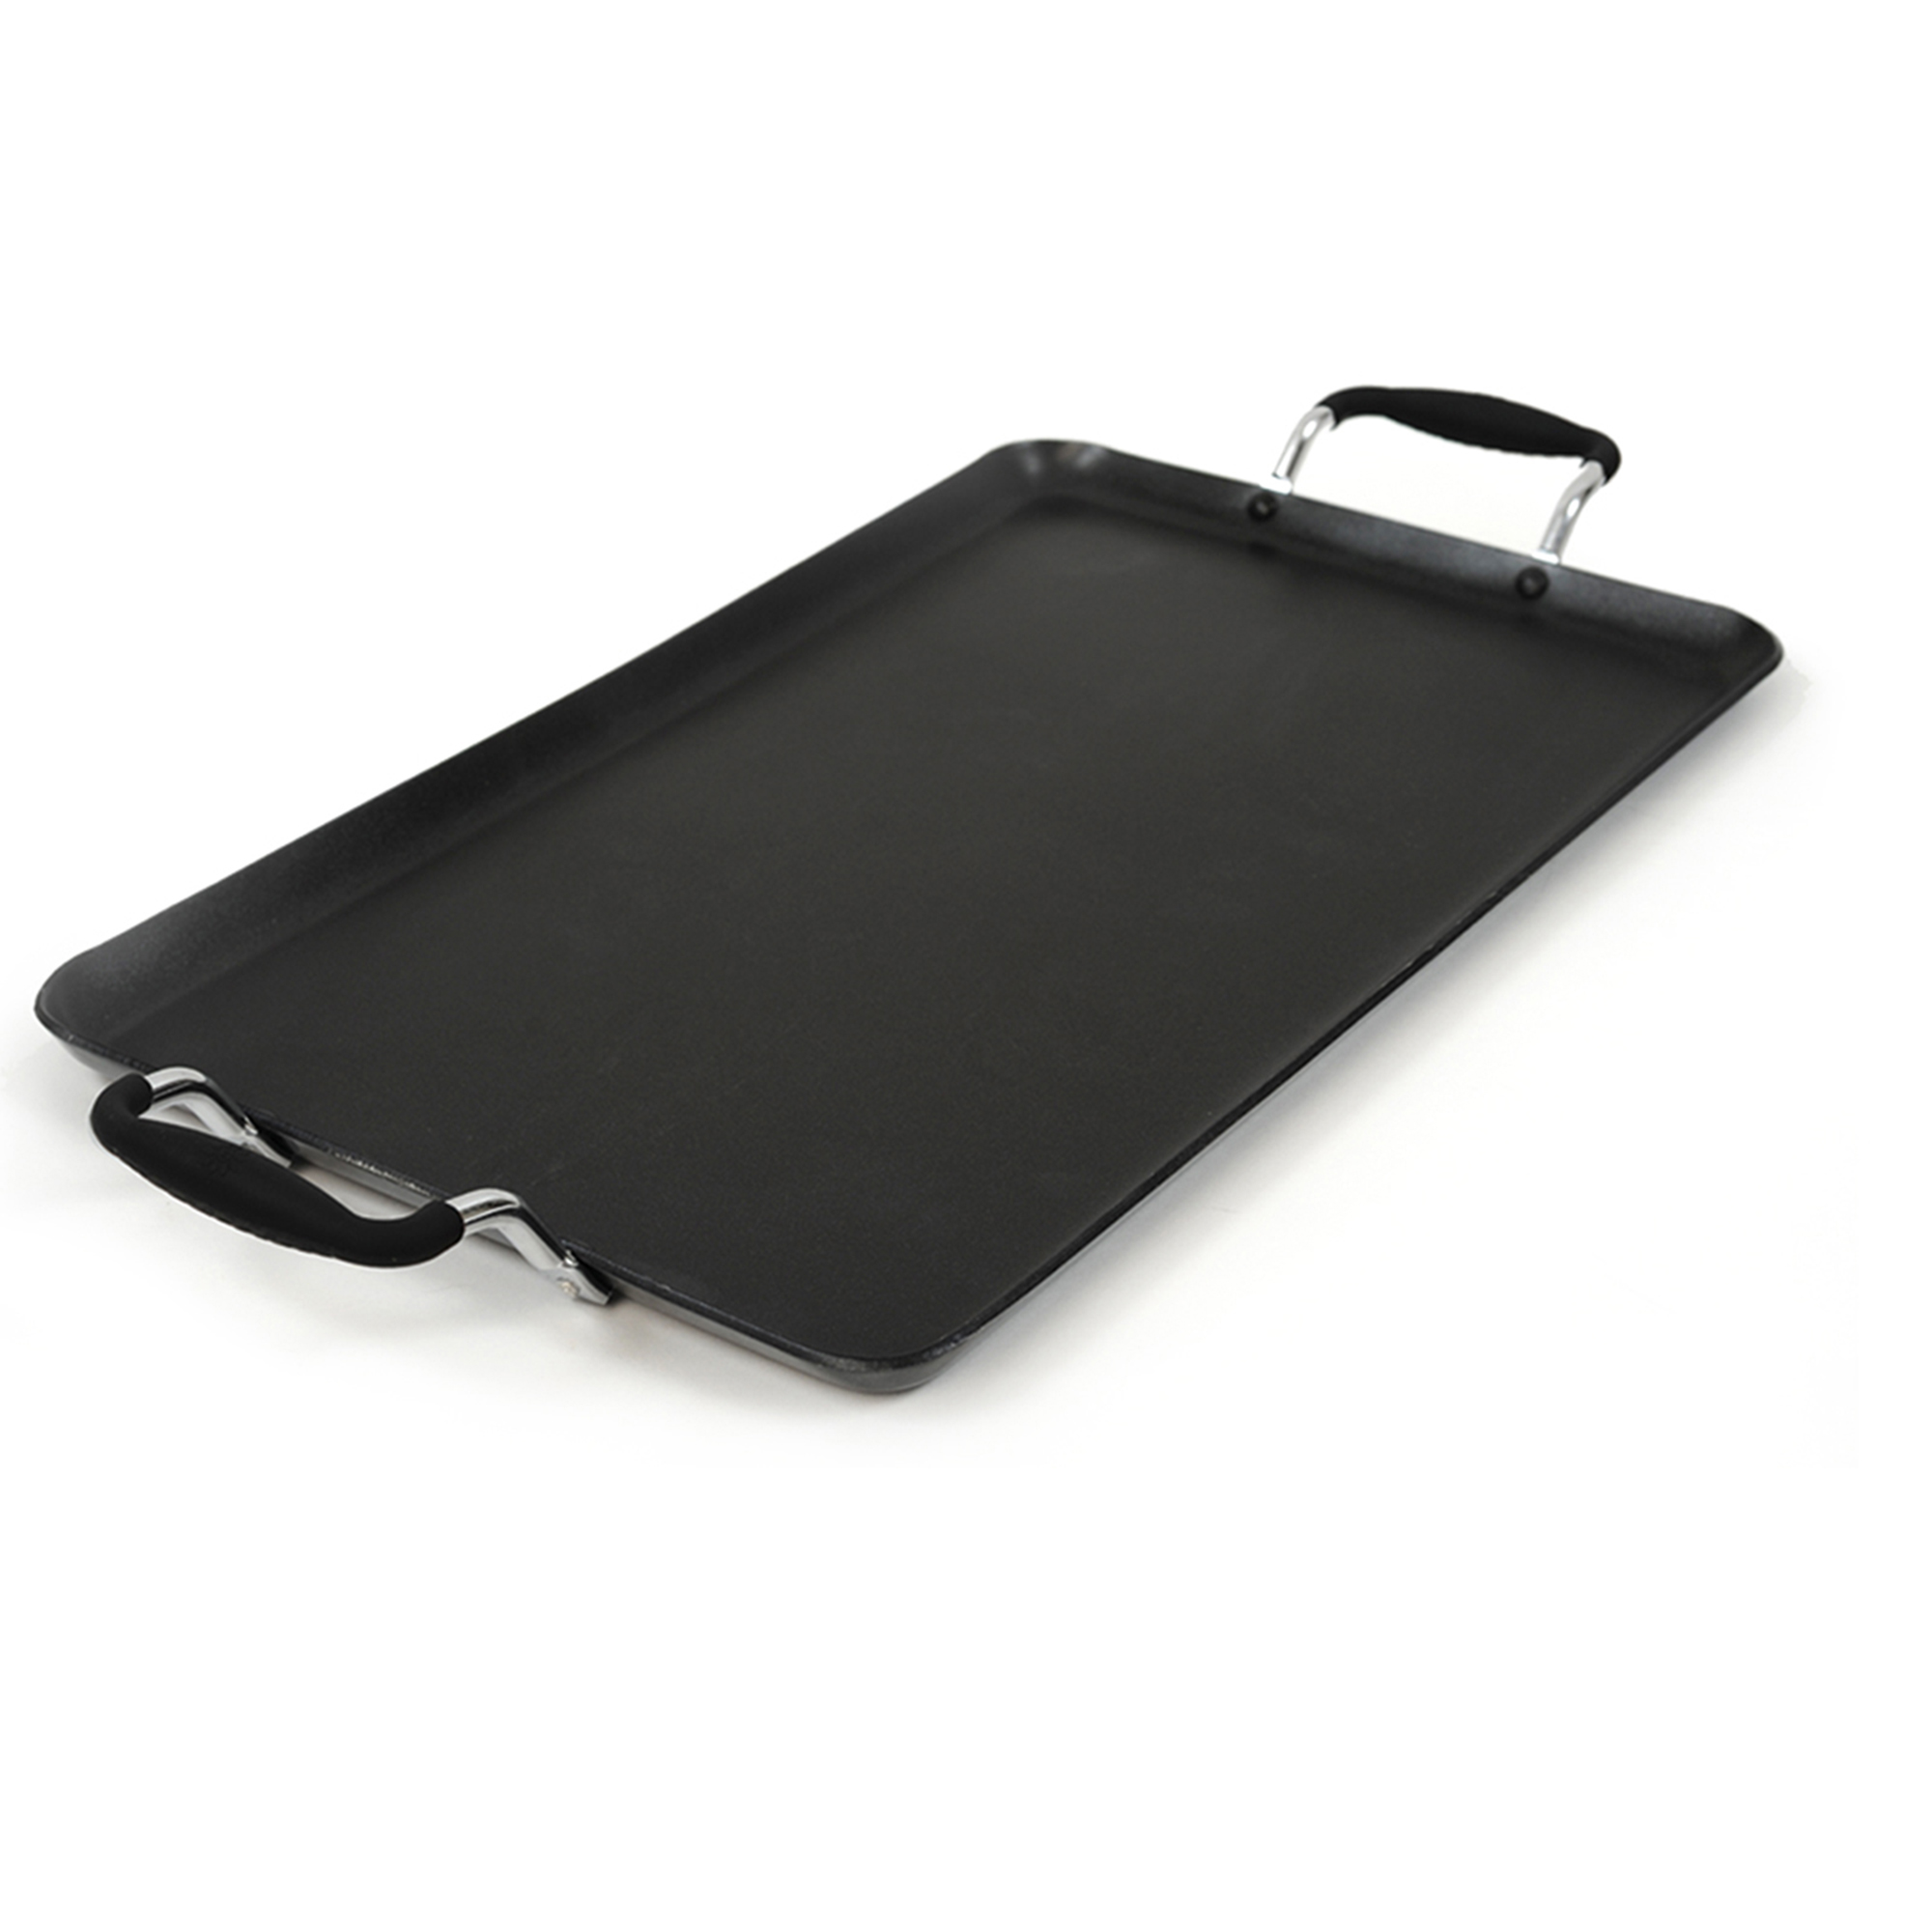 "ECOLUTION EABK-3218 BLACK ARTISTRY 12"" BY 18"" GRIDDLE"